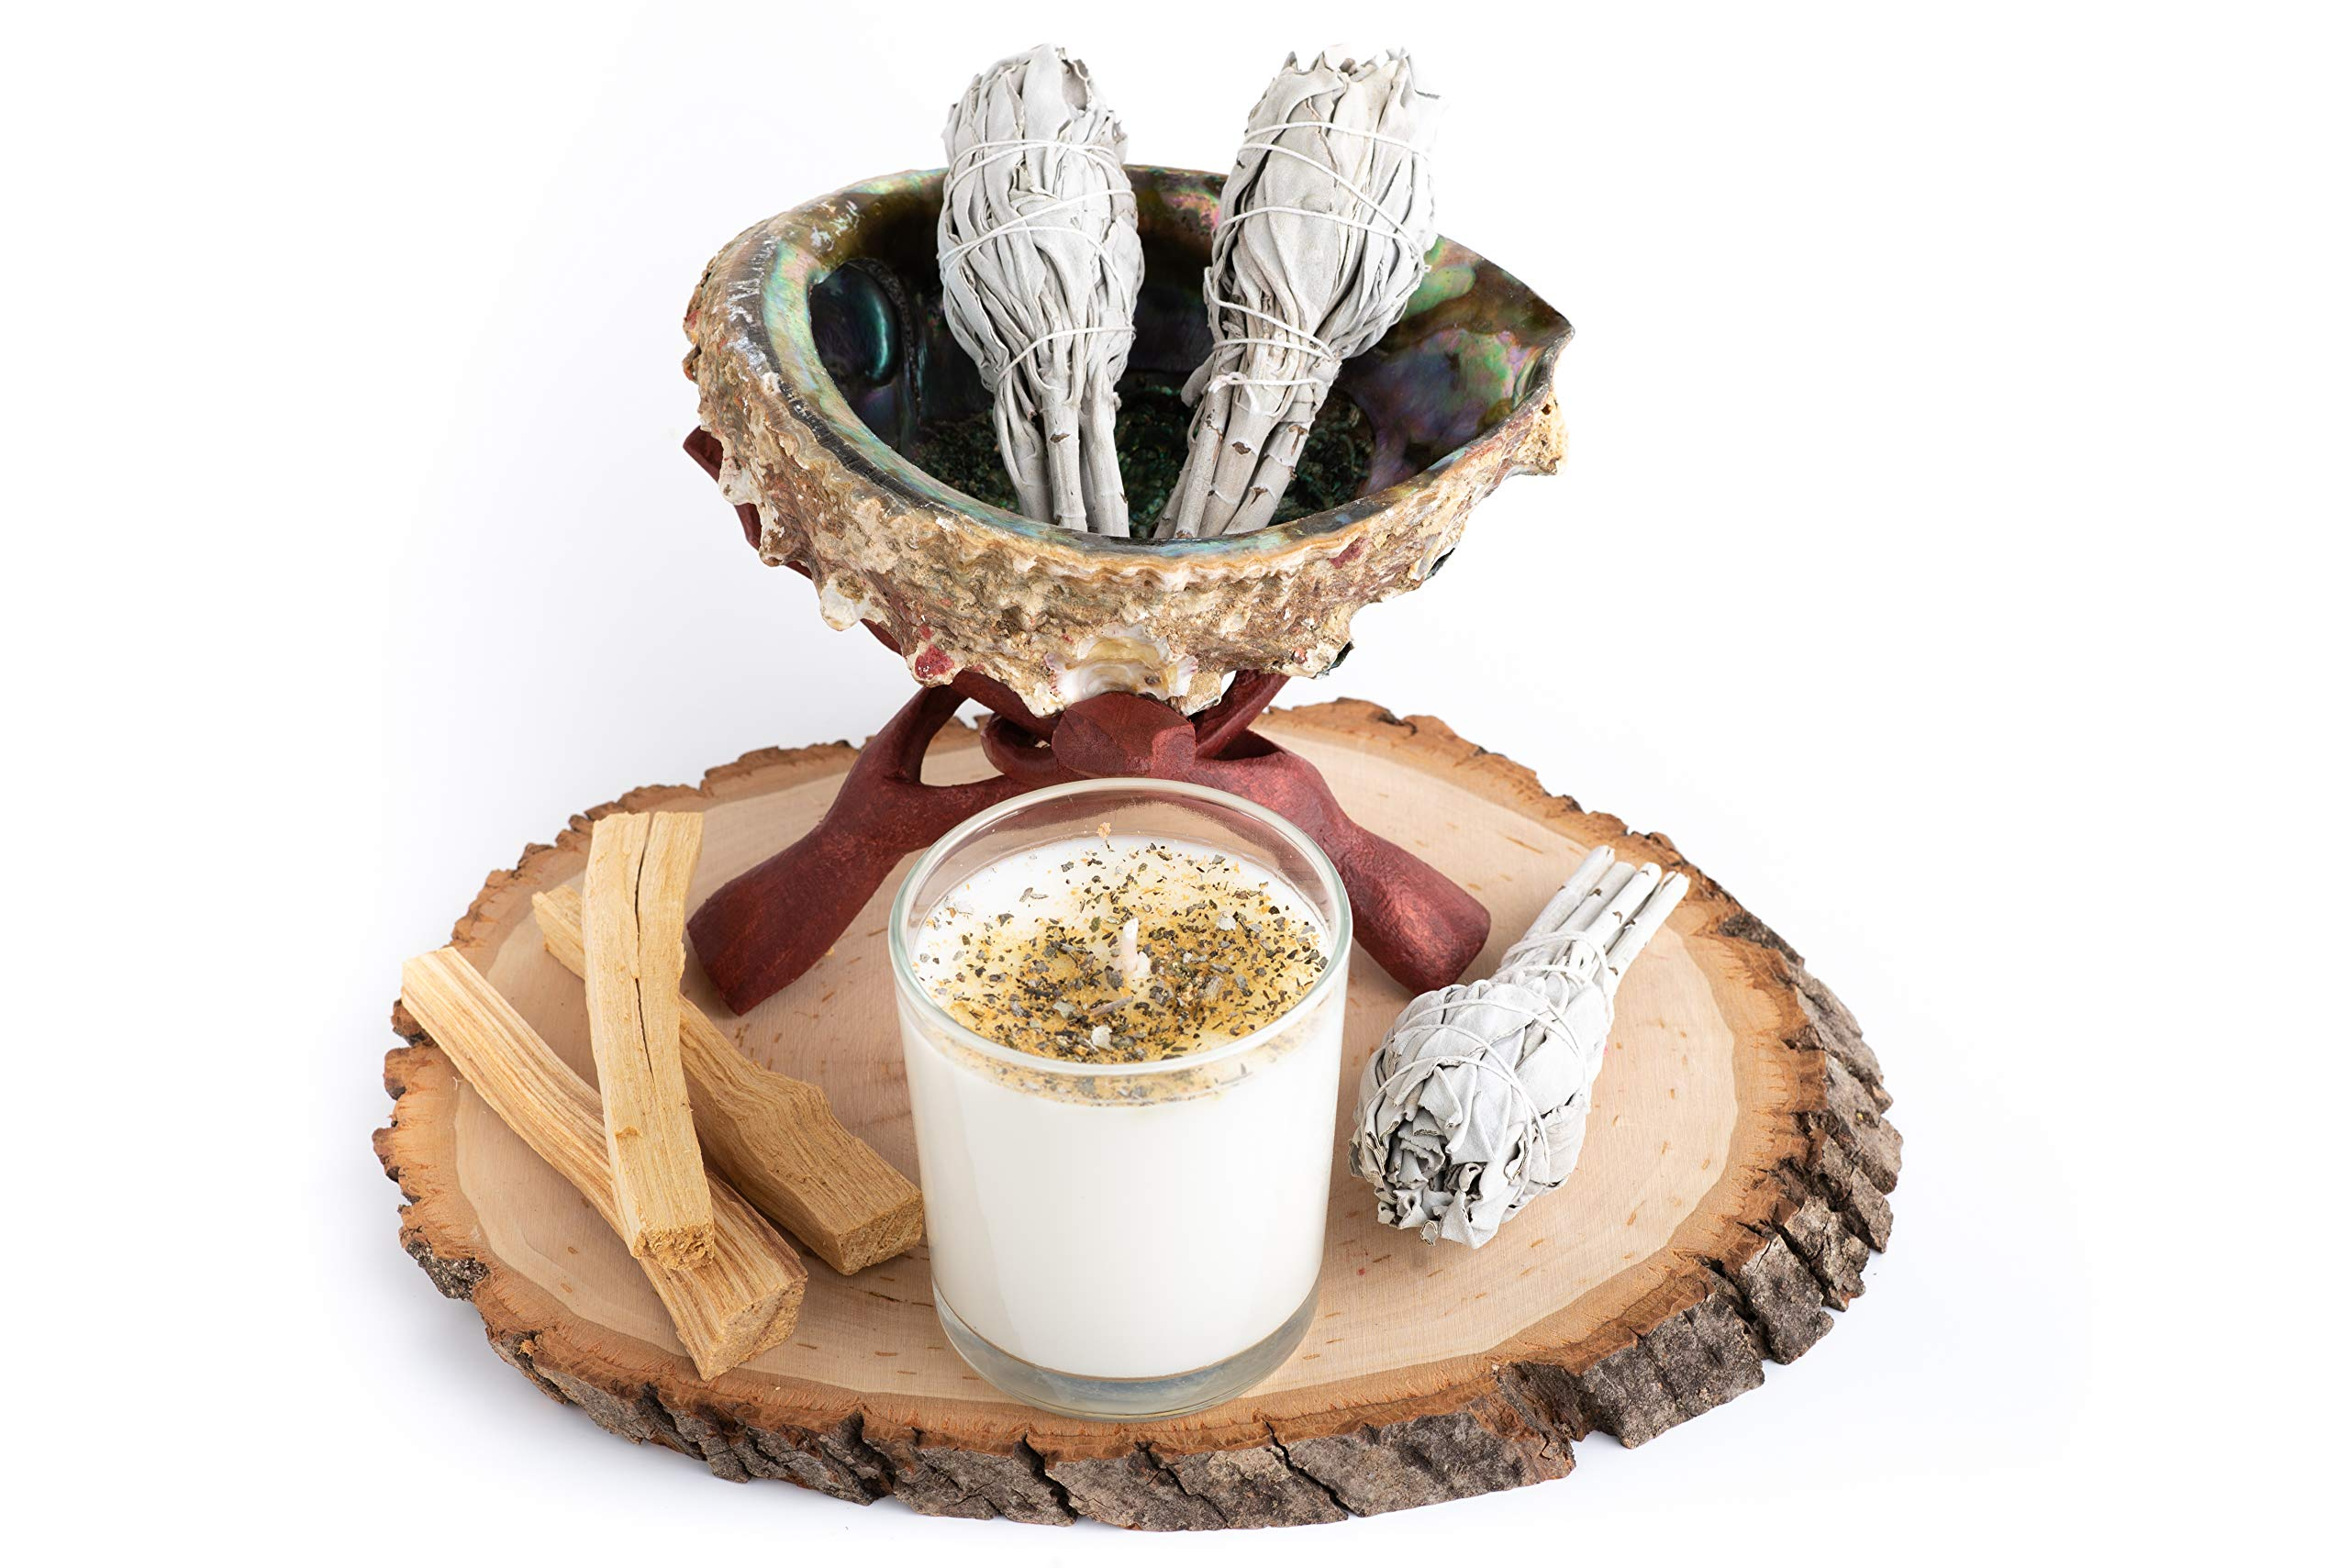 Home Cleansing and Blessing Kit - Smudging Chakra Balancing, White Sage, Palo Santo Sticks, Abalone Shell, Candle, Healing Incense, Good Luck, Purifying, Protection, Spiritual Cleansing, Meditation by My Lumina (Image #5)